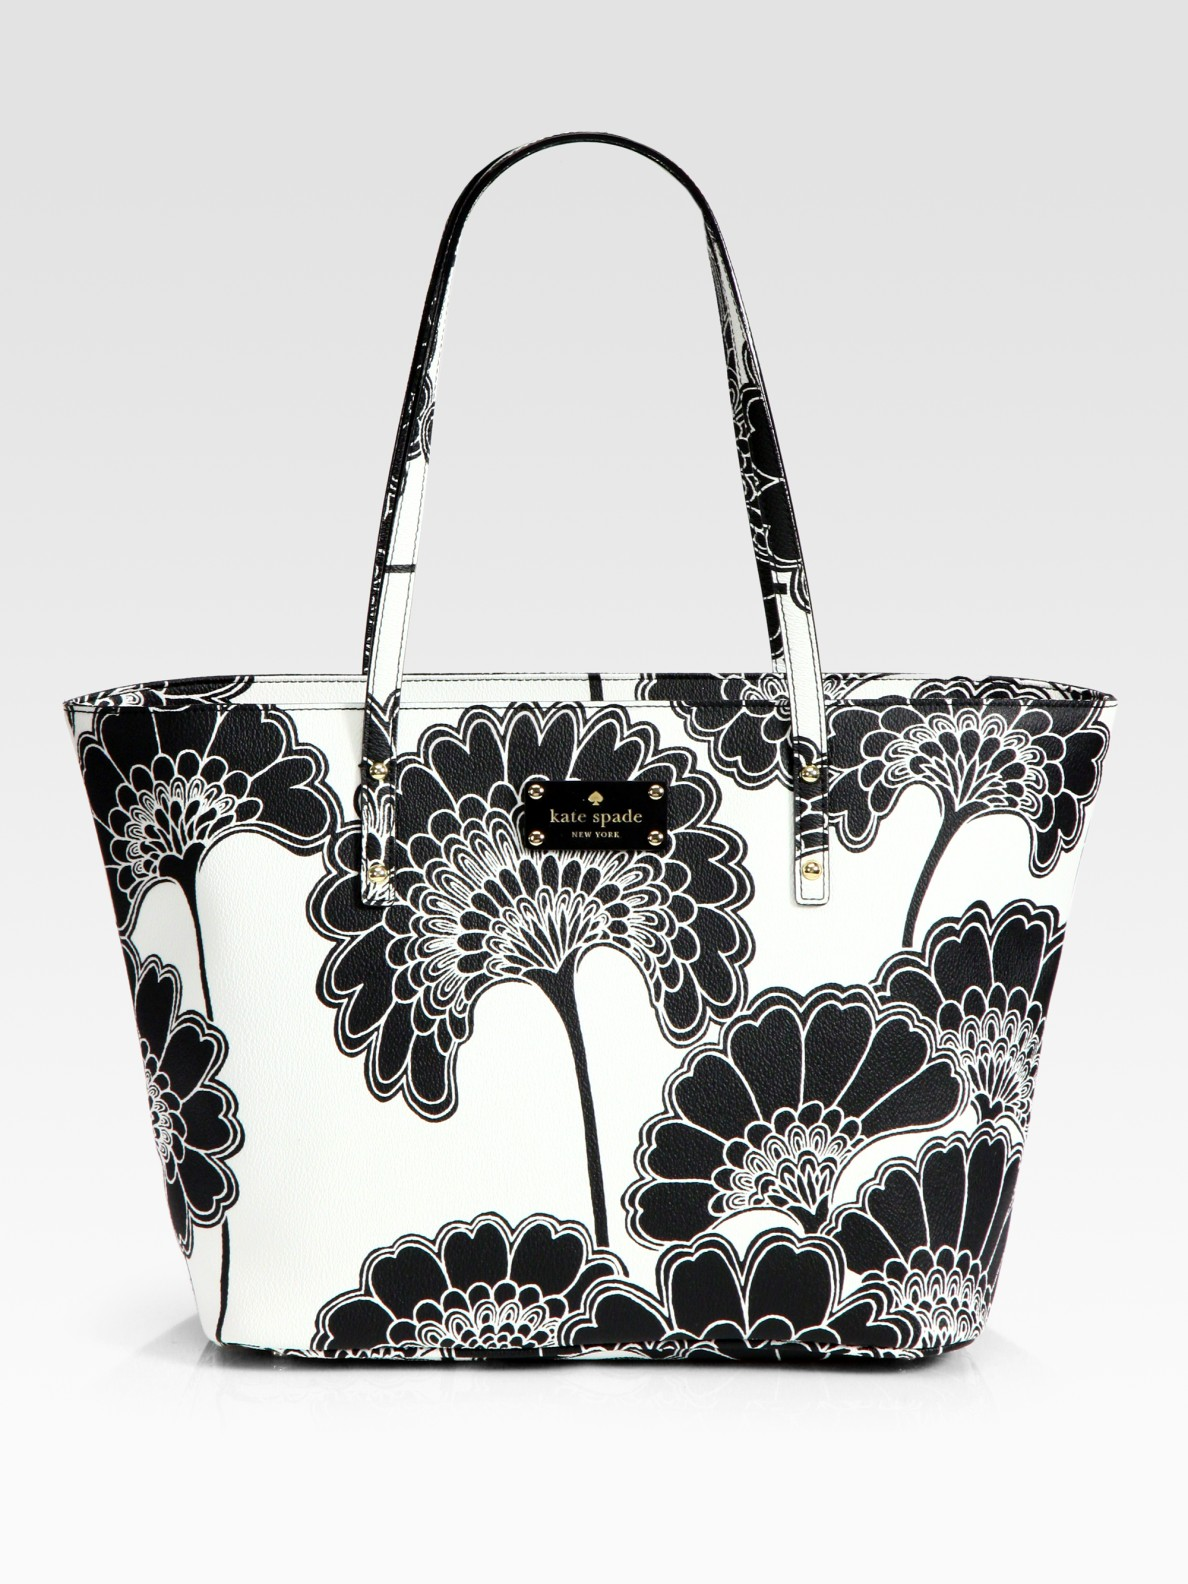 Kate Spade Harmony Floral Vinyl Tote Bag In Black White